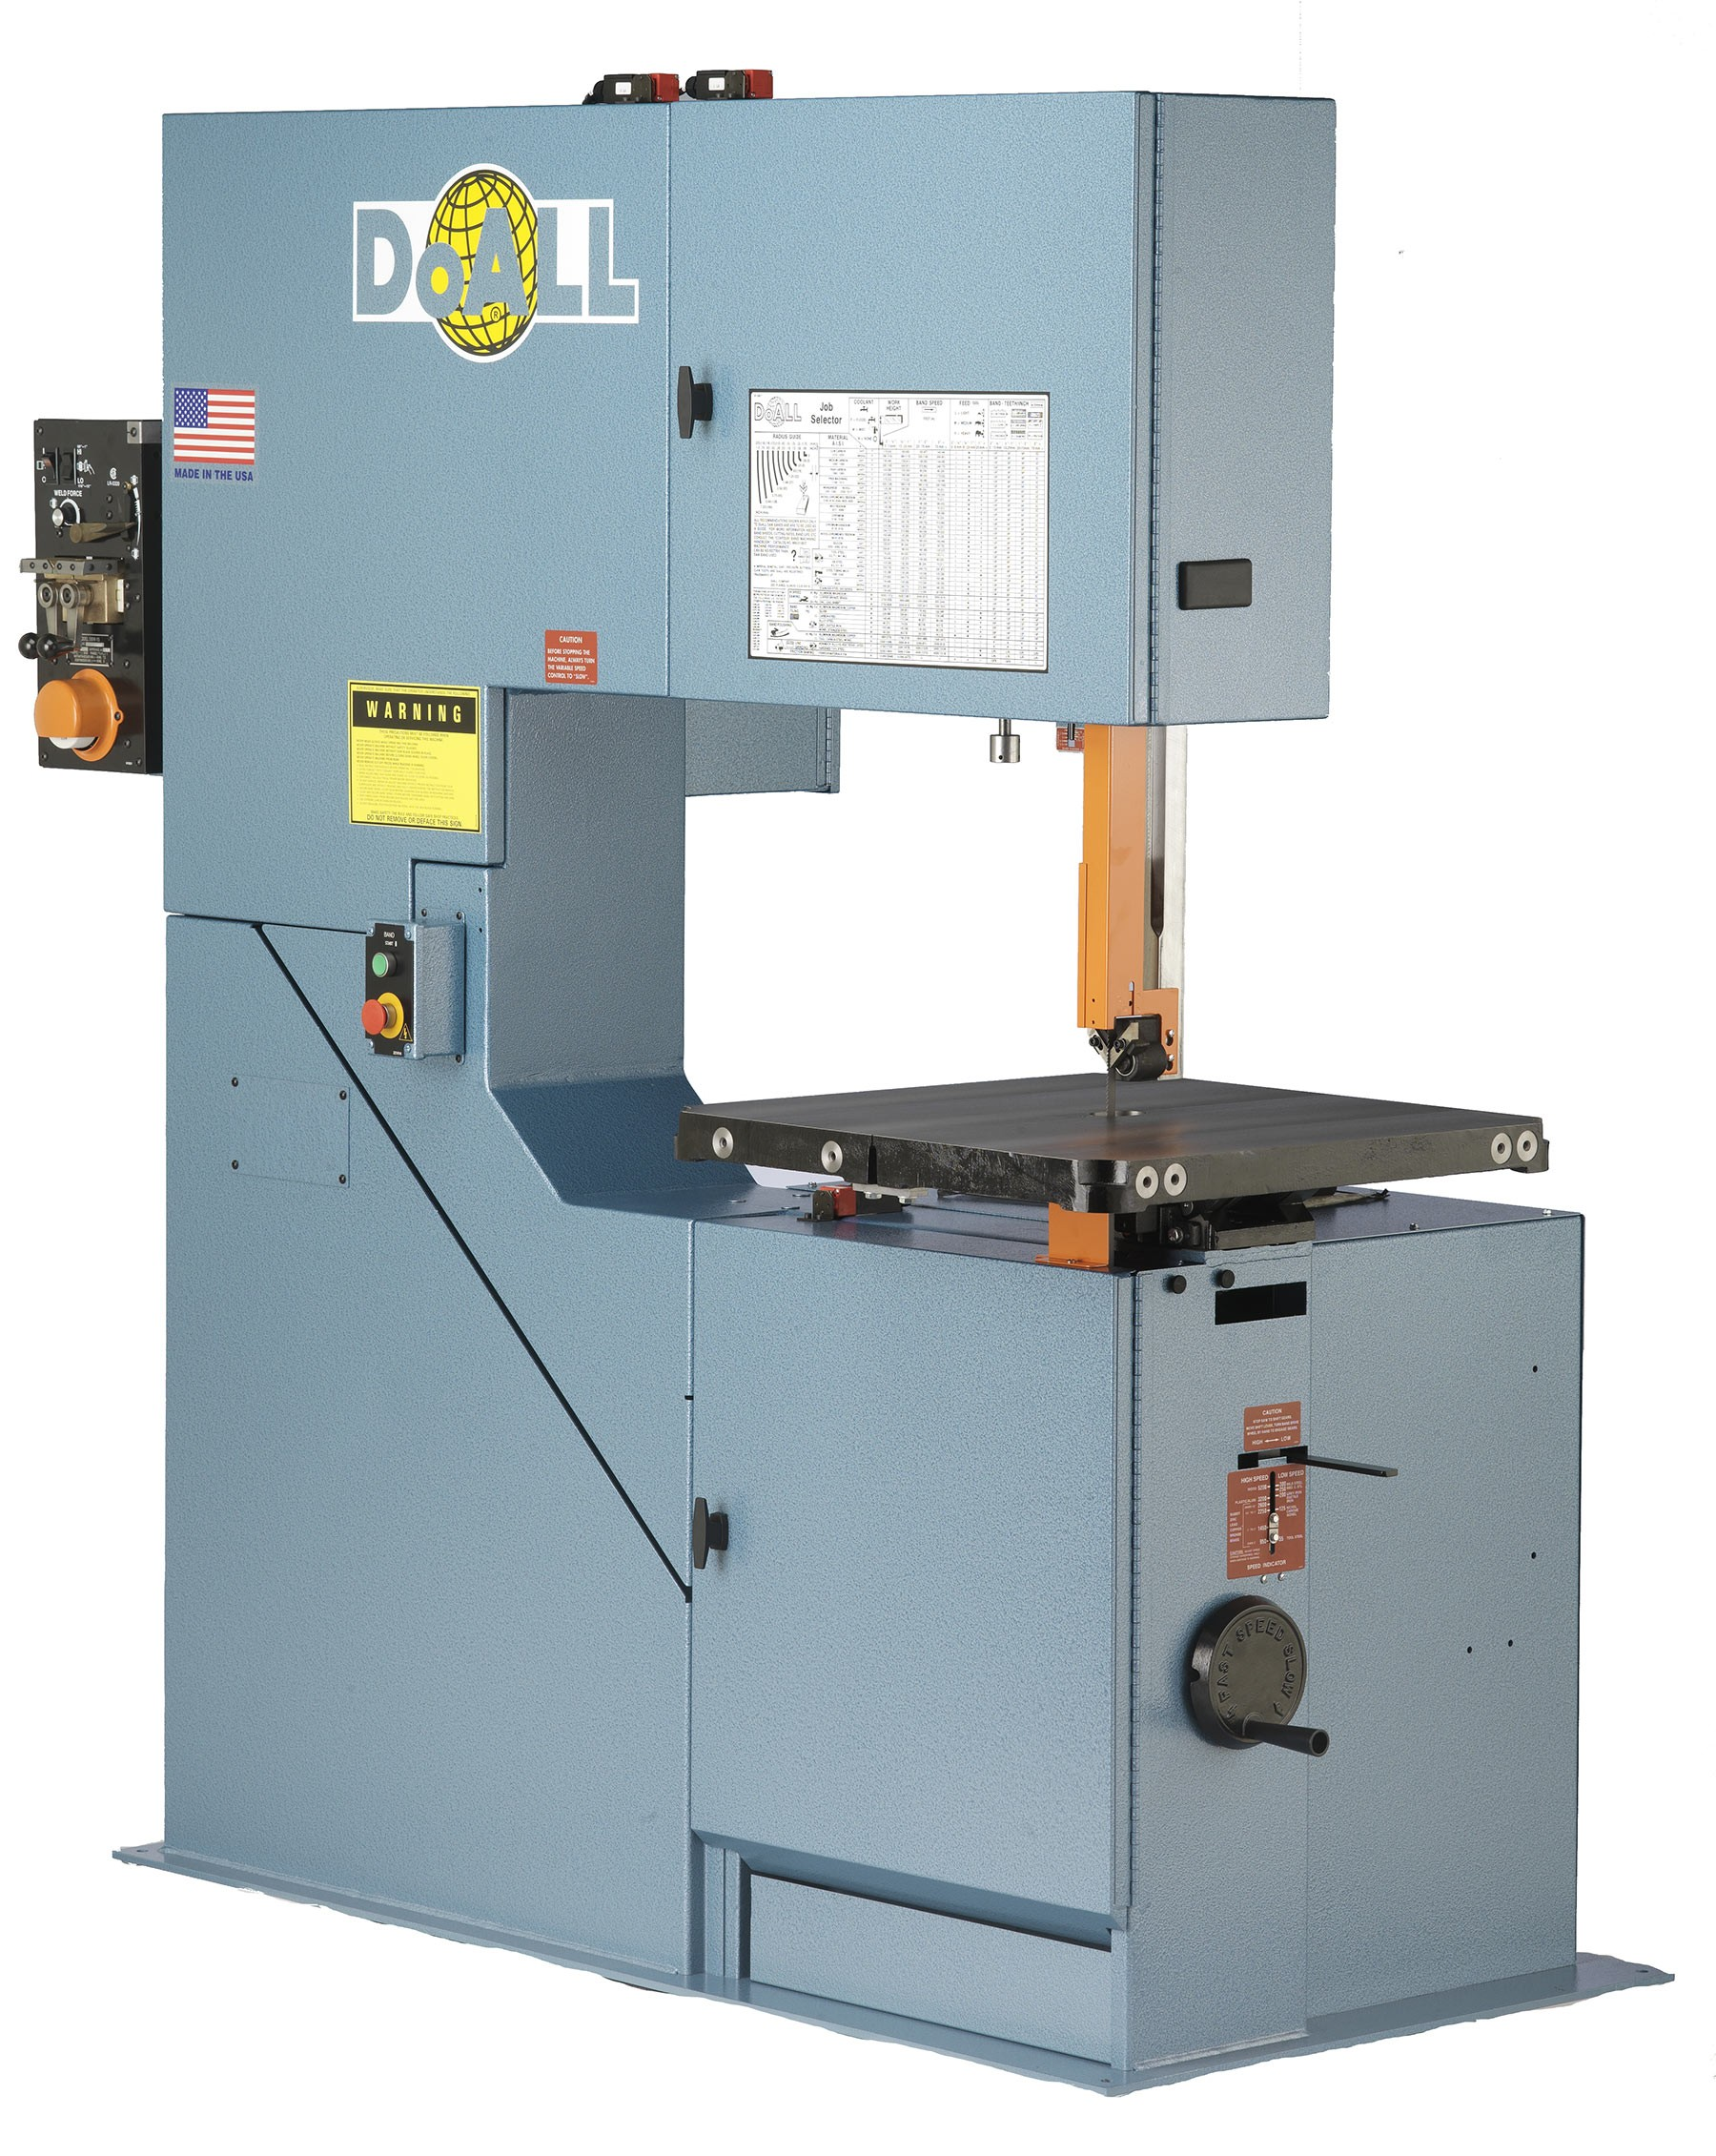 Vertical Concrete Saw Cutting Equipment : Doall vertical contour band saw v elite metal tools